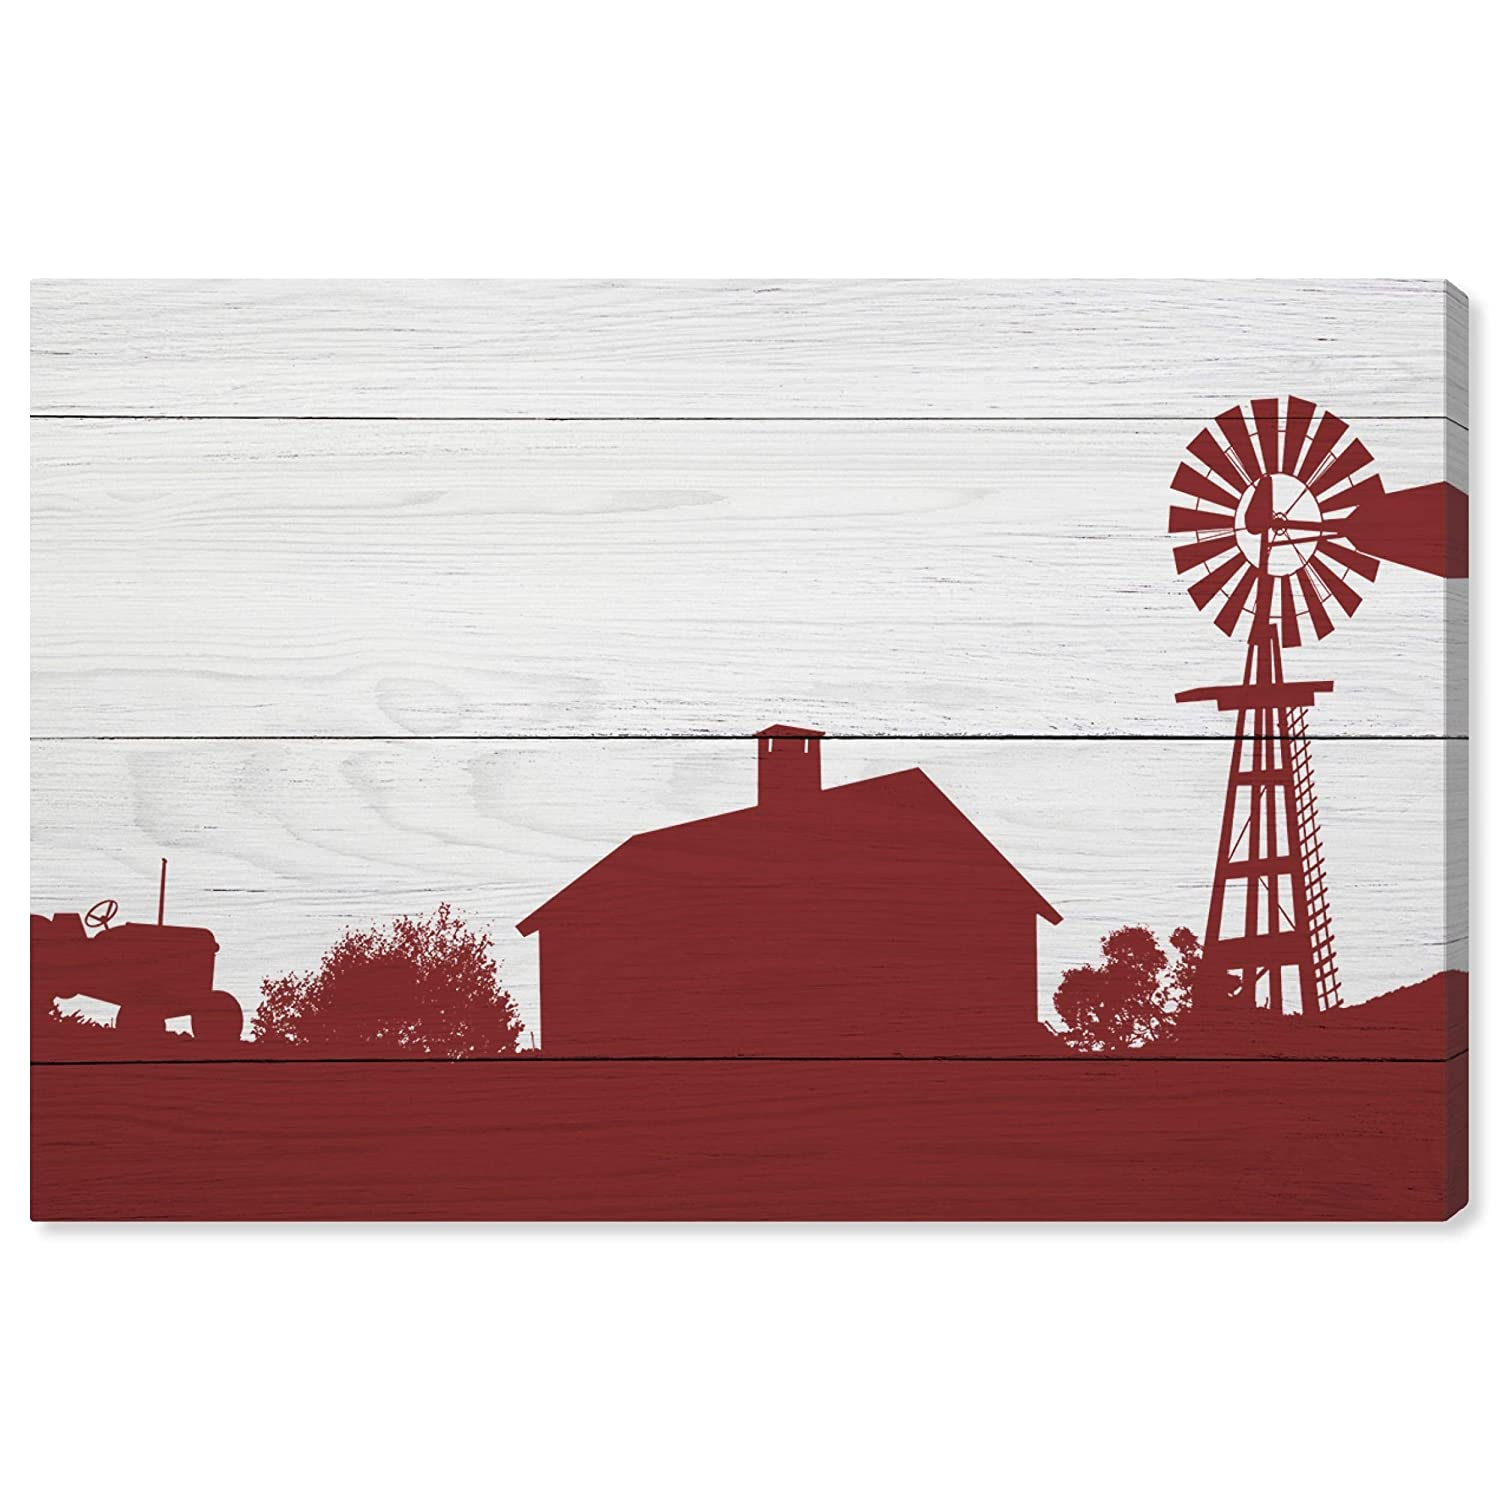 Amazon.com: The Oliver Gal Artist Co. Nature and Landscape Wall Art Canvas Prints Farm Silhouette Home Décor, 15